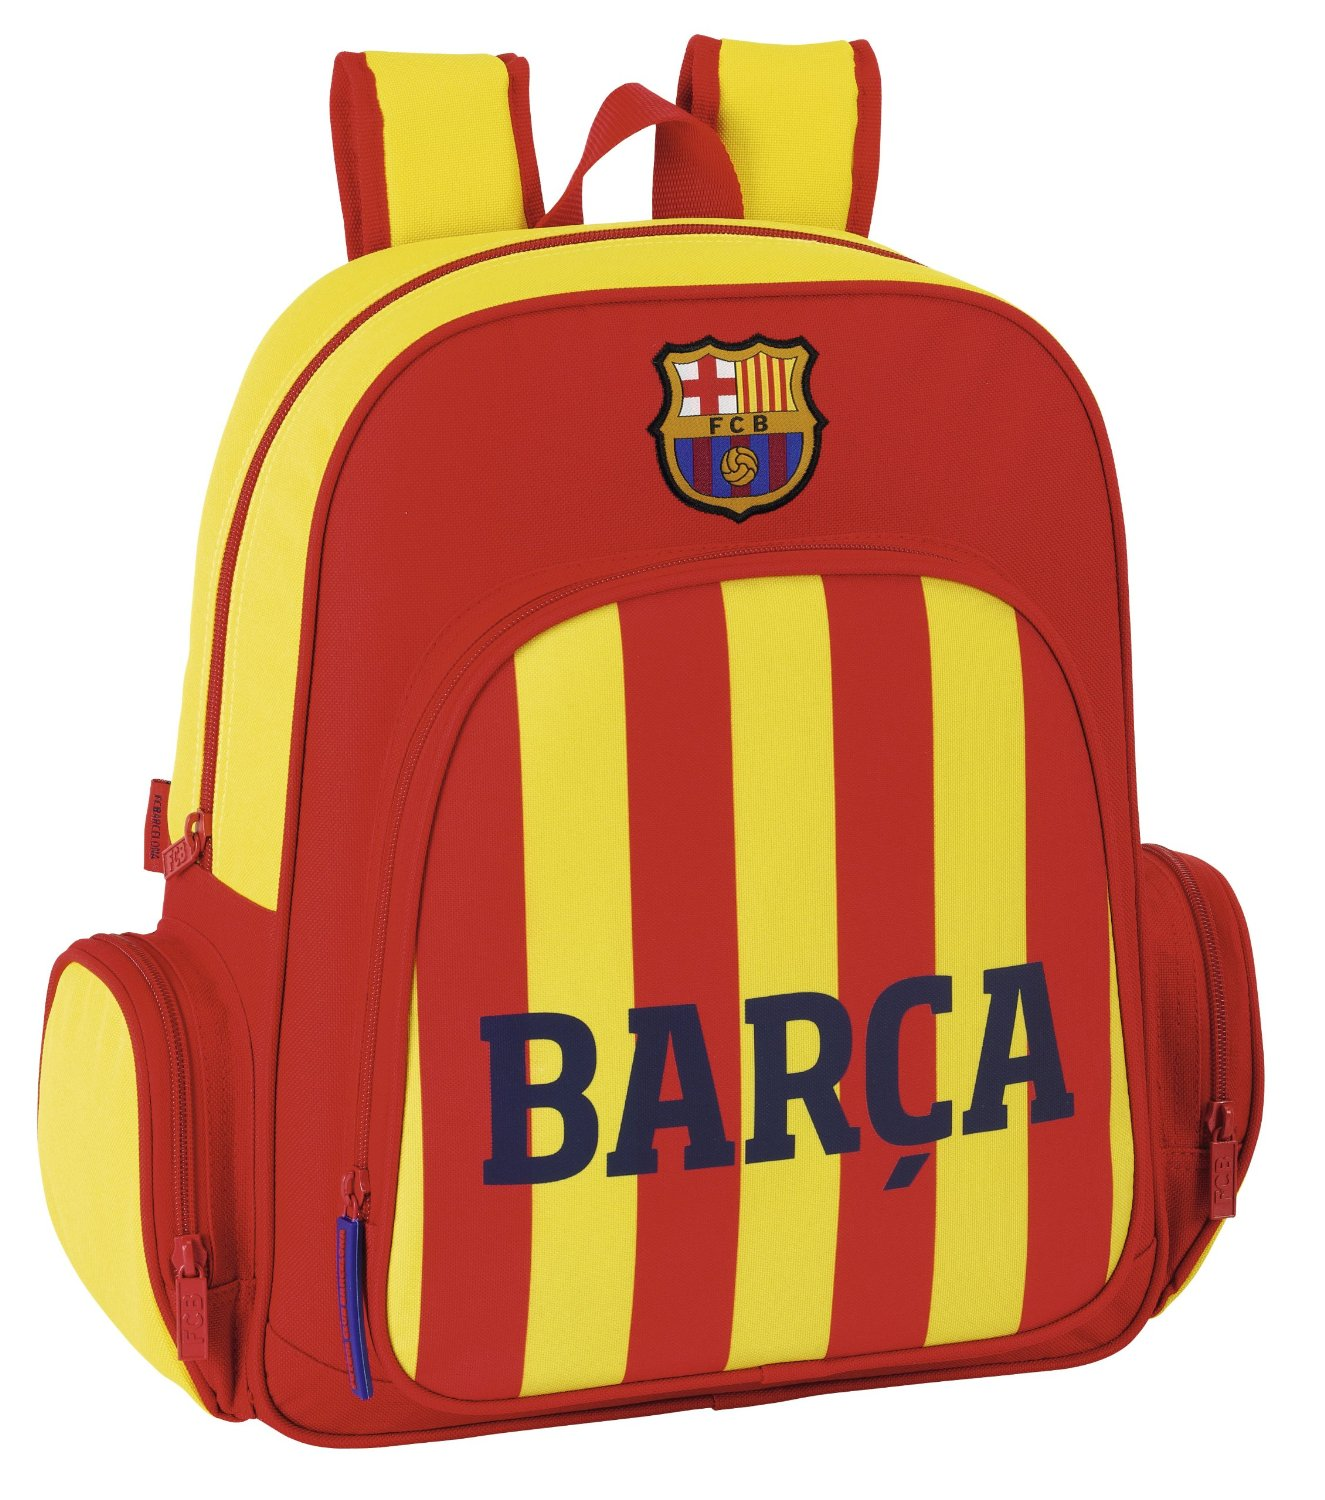 Barça-Senyera - Day Pack Junior adaptable, 32 x 38 x 12 cm